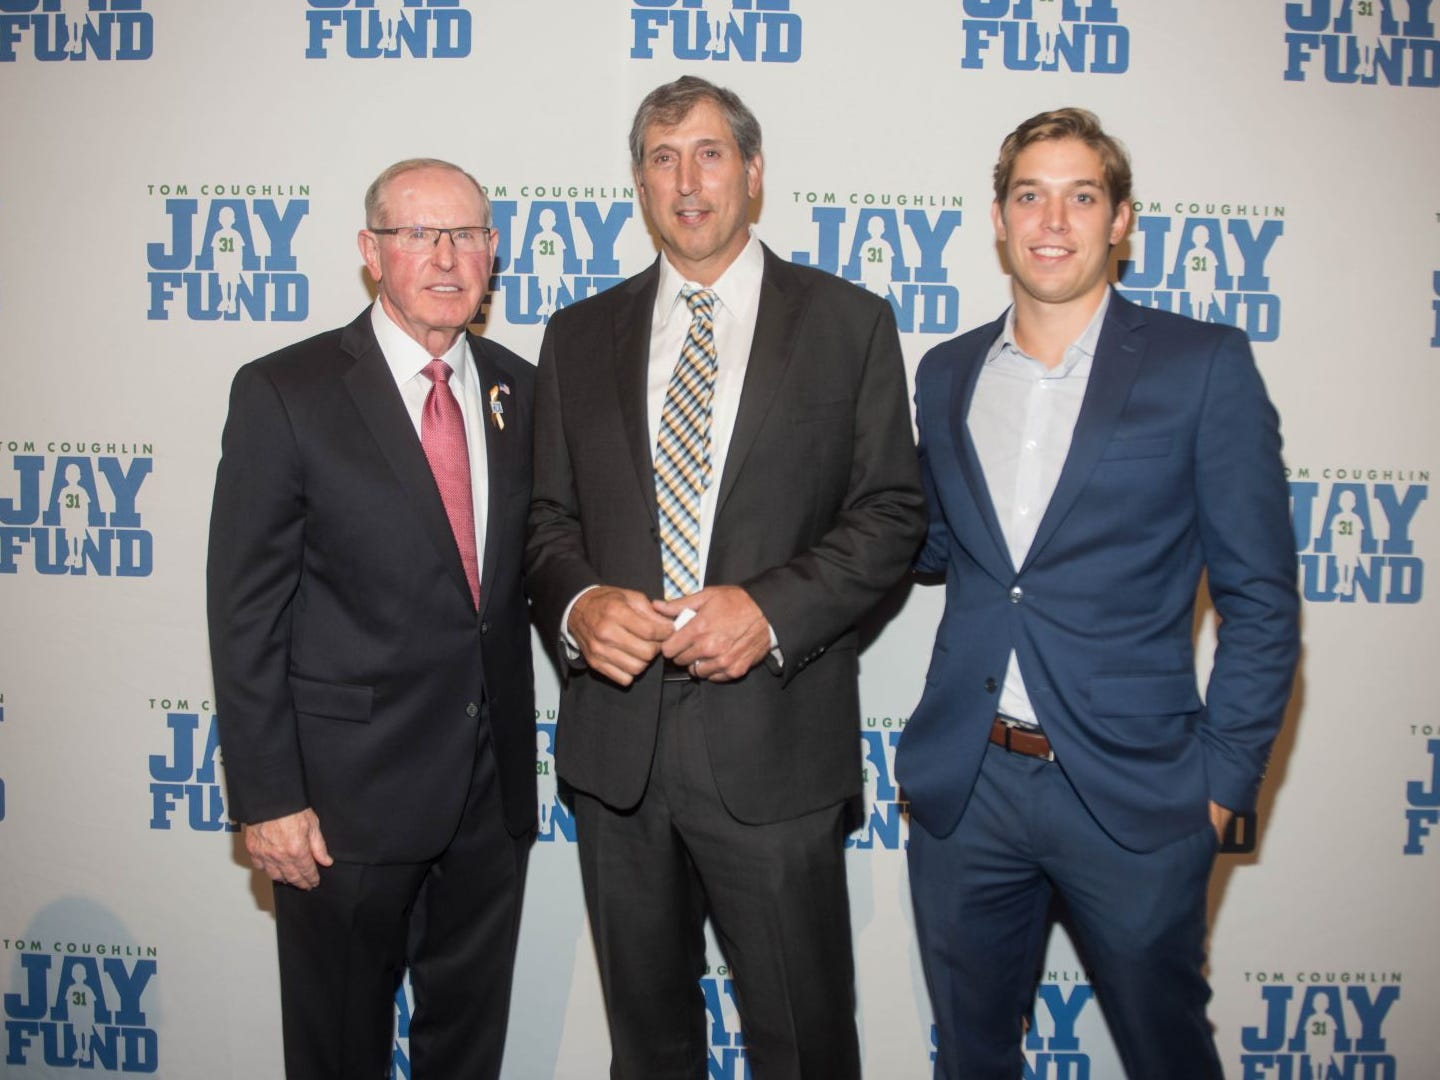 Tom Coughlin, Mark Bavaro and Lucas Bavaro. The 14th annual Jay Fund Champions for Children Gala was held at Cipriani 42nd Street. 09/21/2018